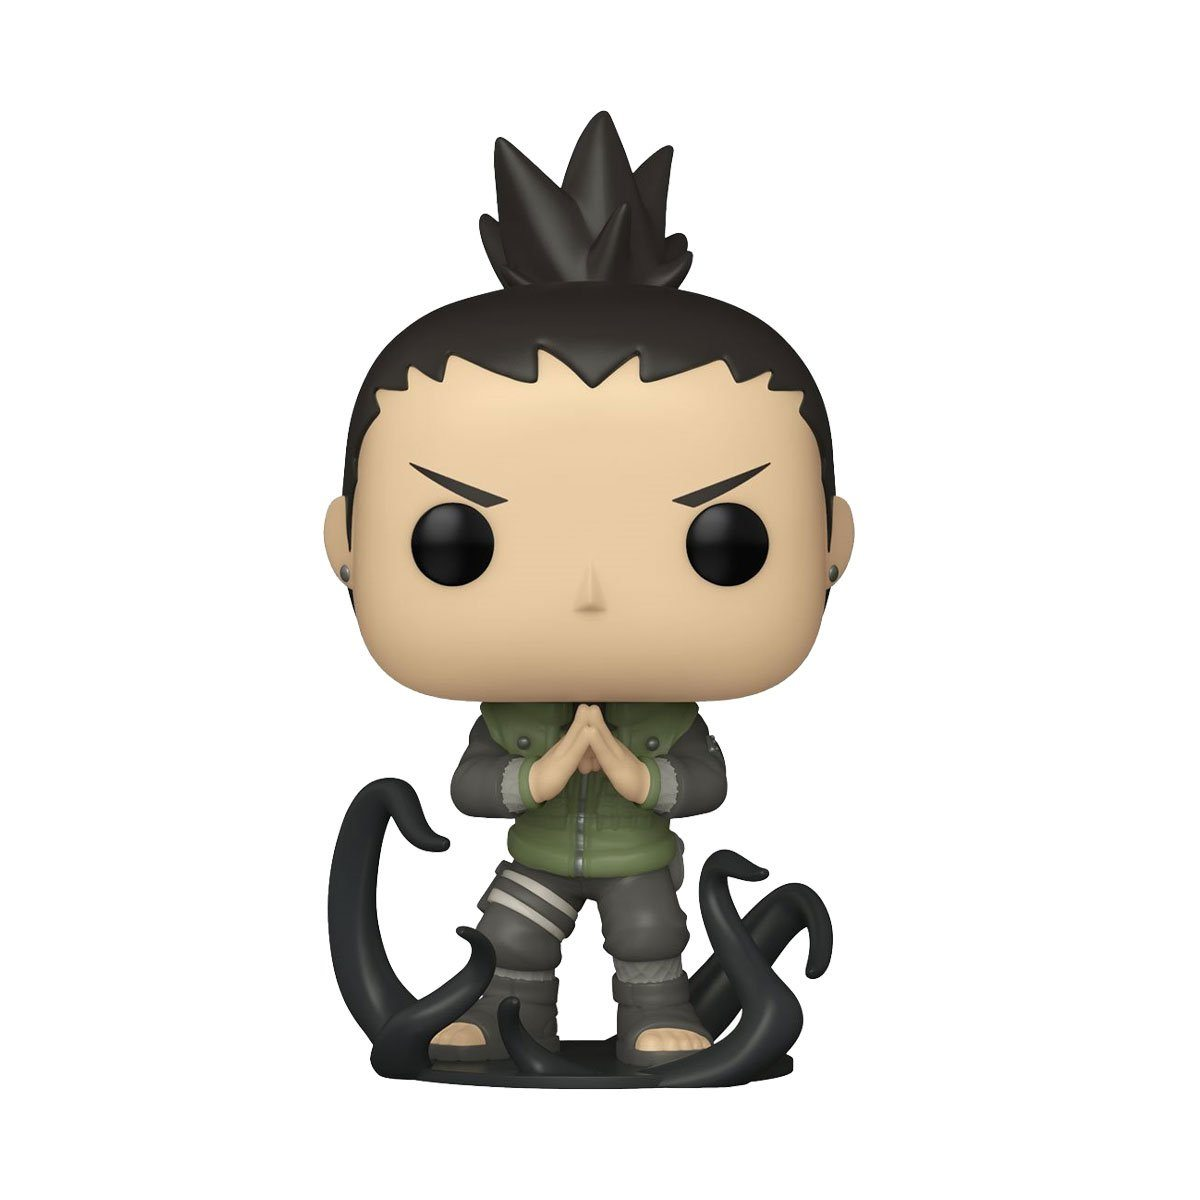 Shikamaru Nara Naruto Funko POP! Animation [PRE-ORDER FOR MAR 2021* DELIVERY] POP! Funko